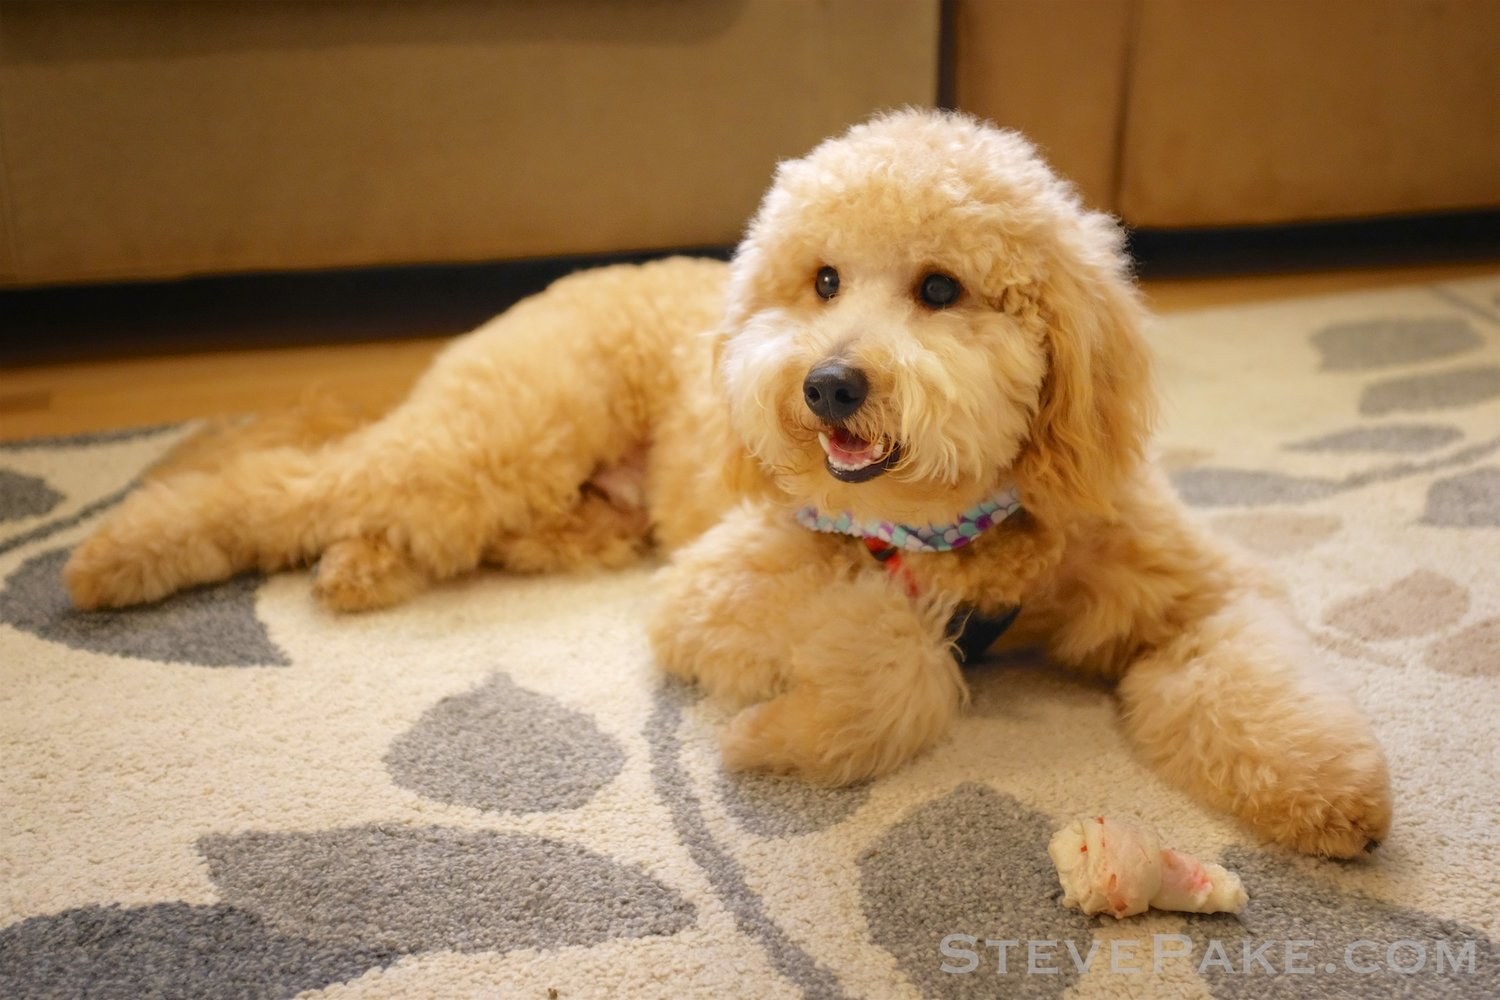 Our Mini Goldendoodle, Puffles — StevePake com: The Life of